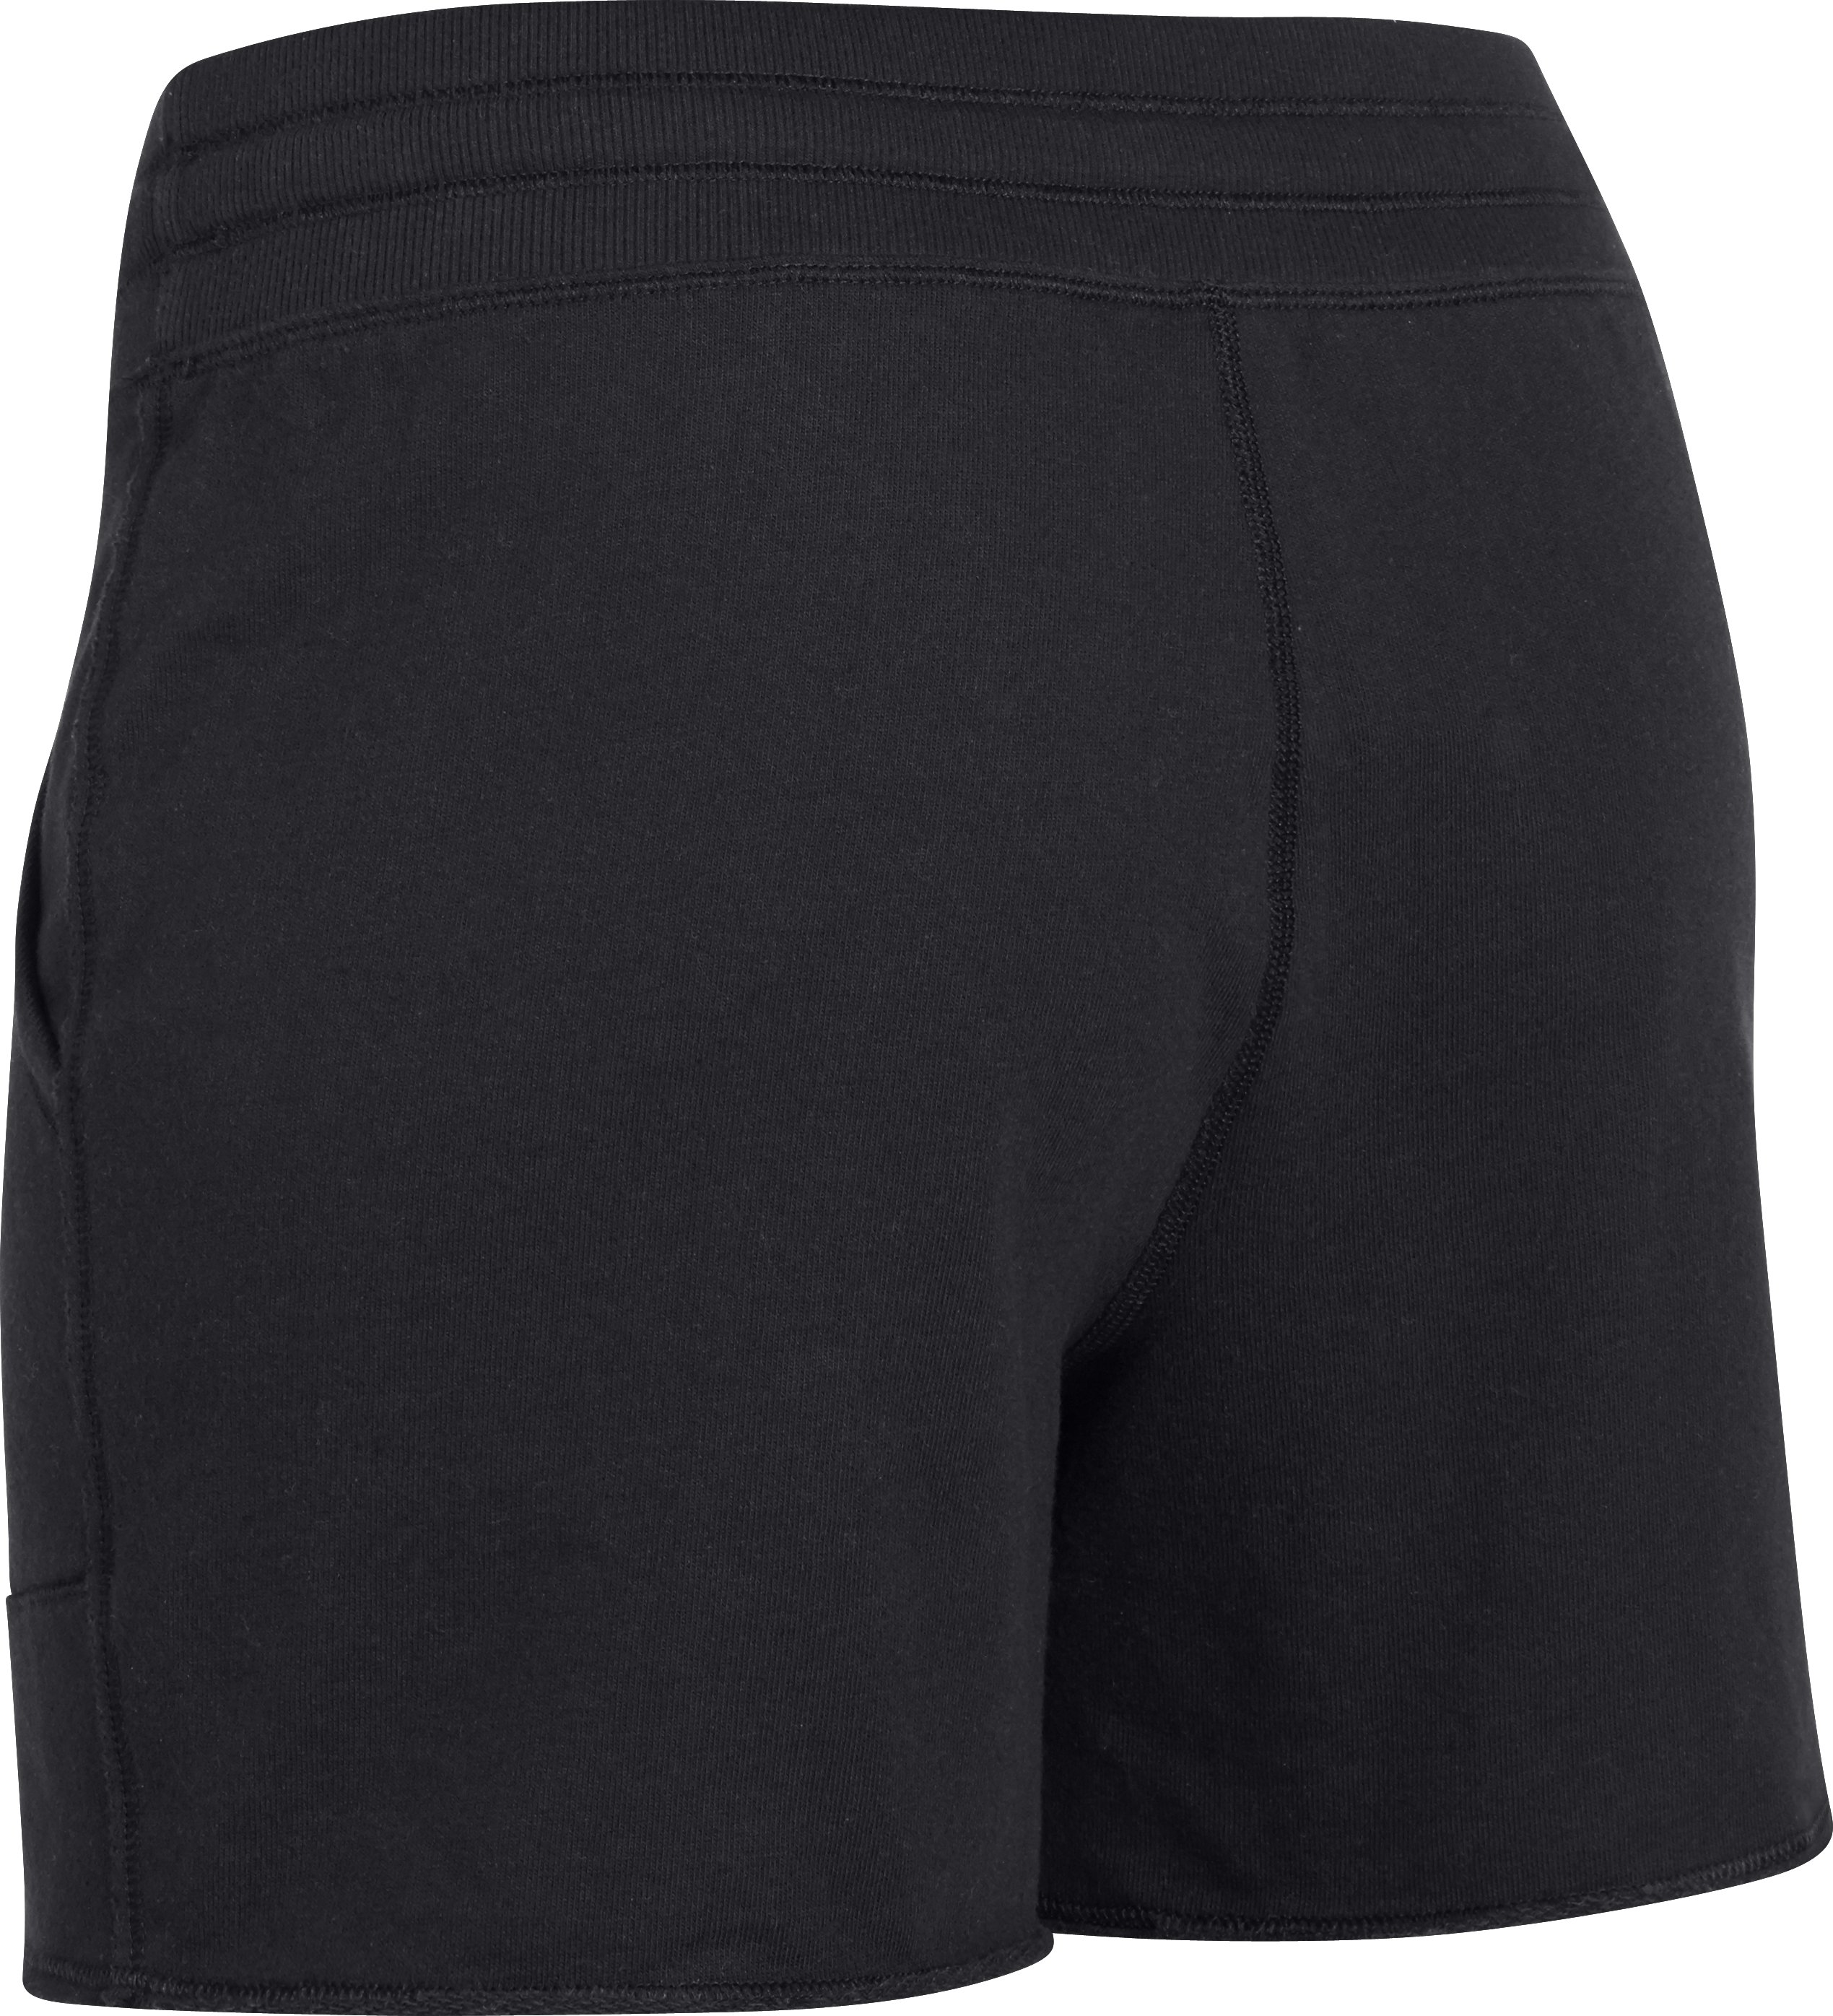 "Women's UA Pretty Gritty 4"" French Terry Shorts, Black"